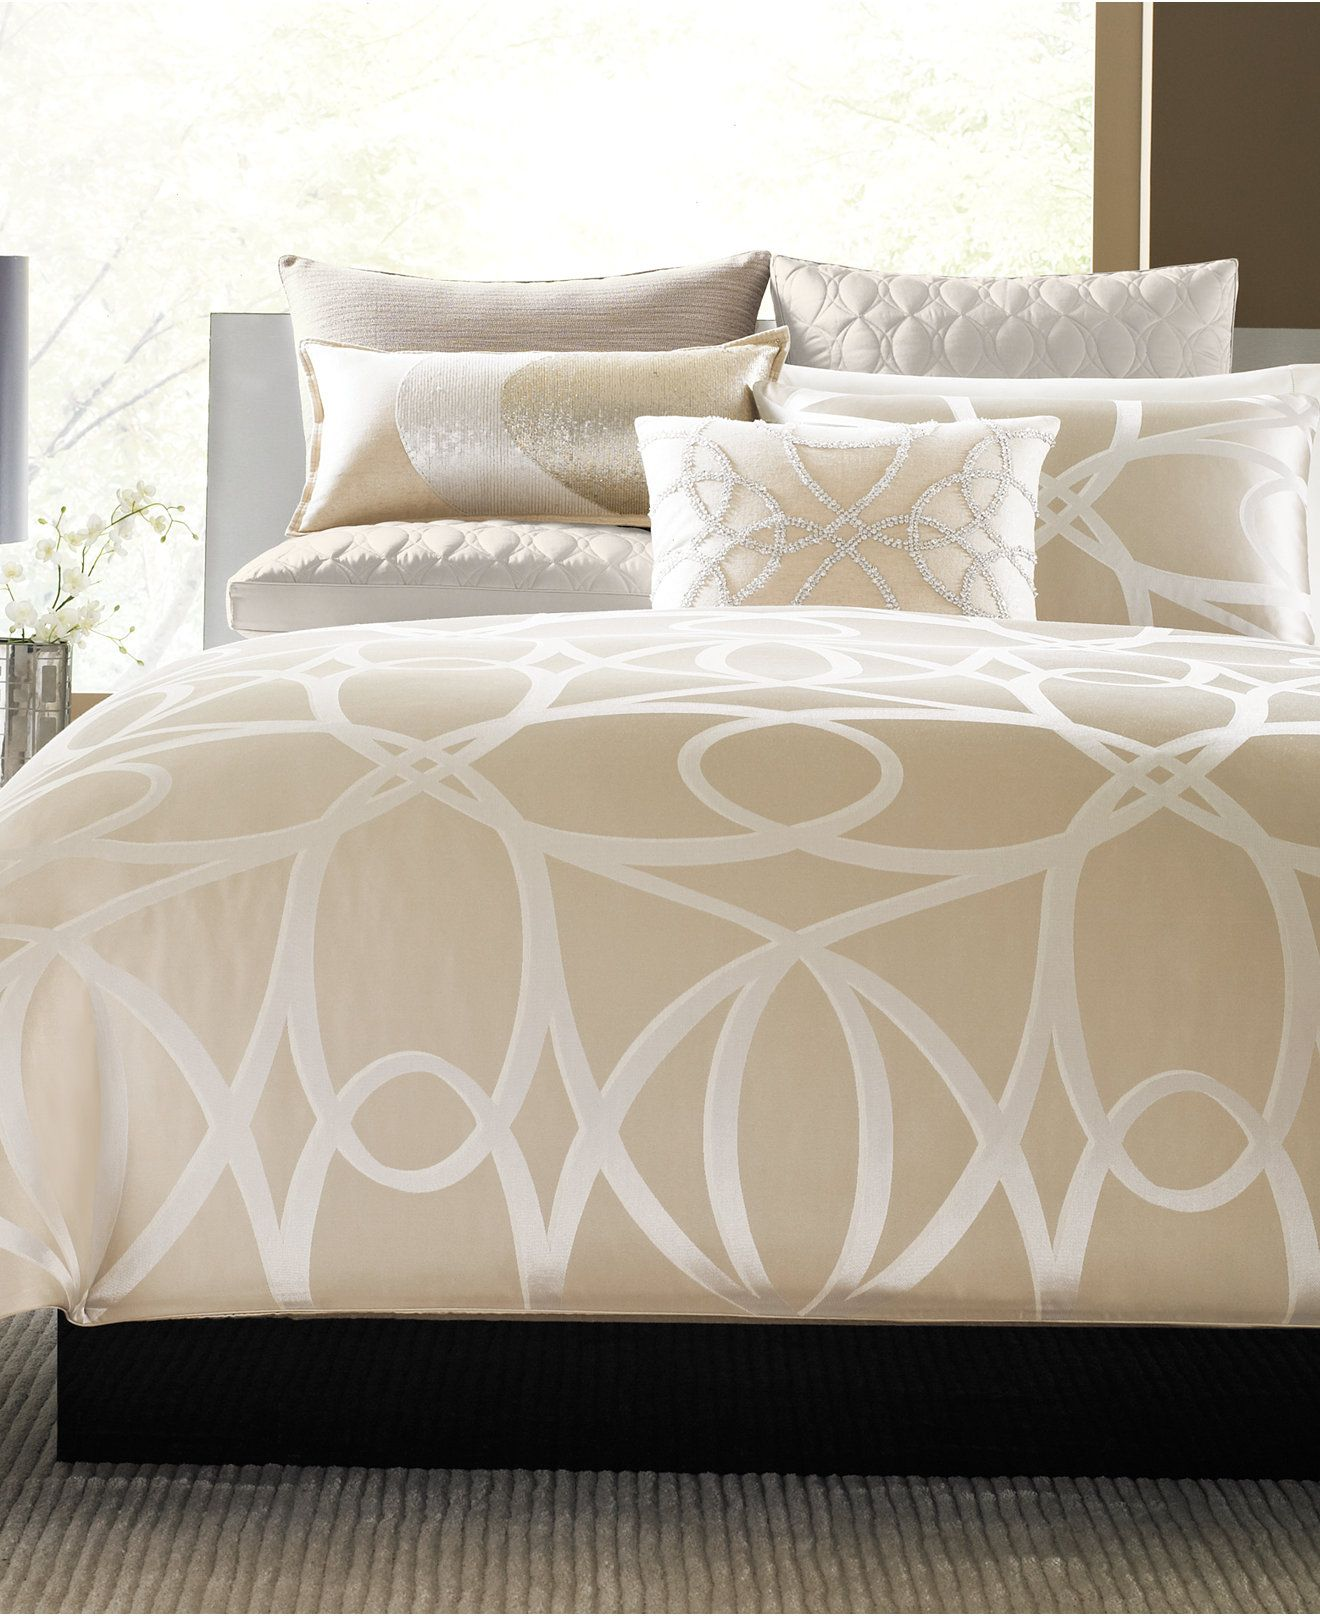 Hotel Collection Oriel Bedding Collection - Bedding Collections ...